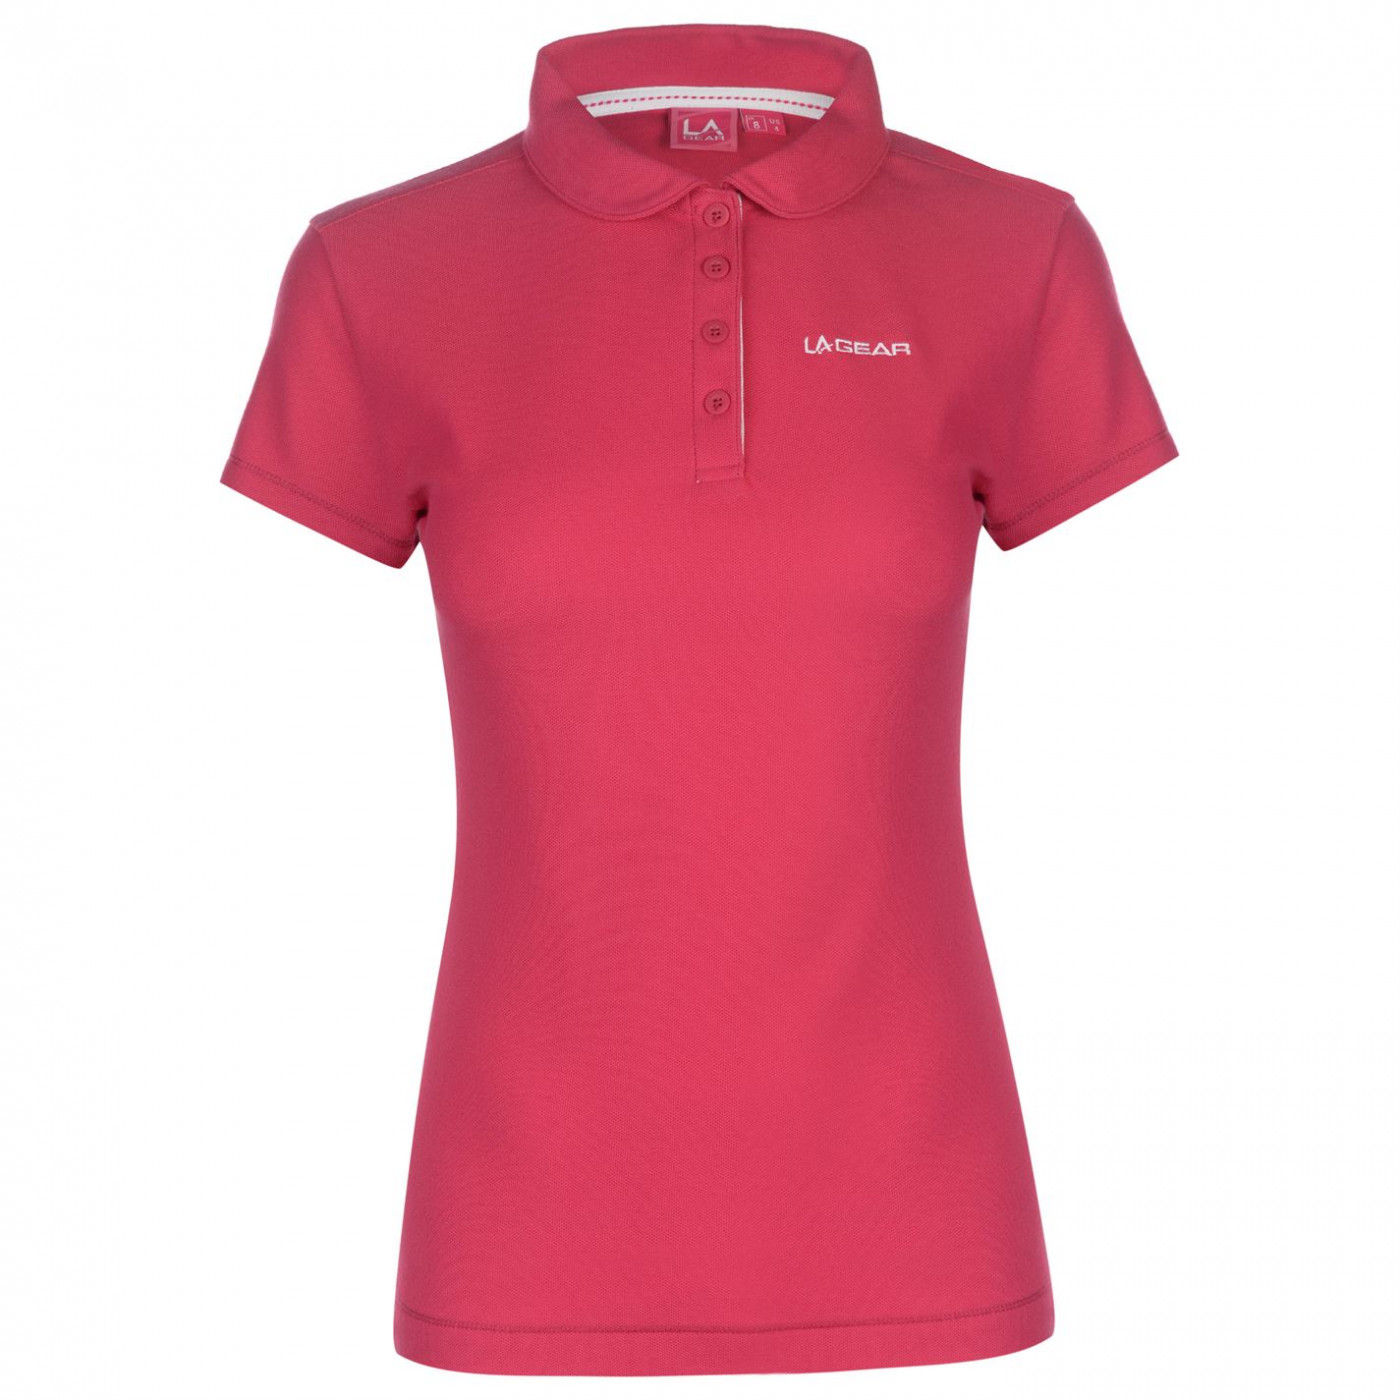 LA Gear Pique Polo Shirt Ladies